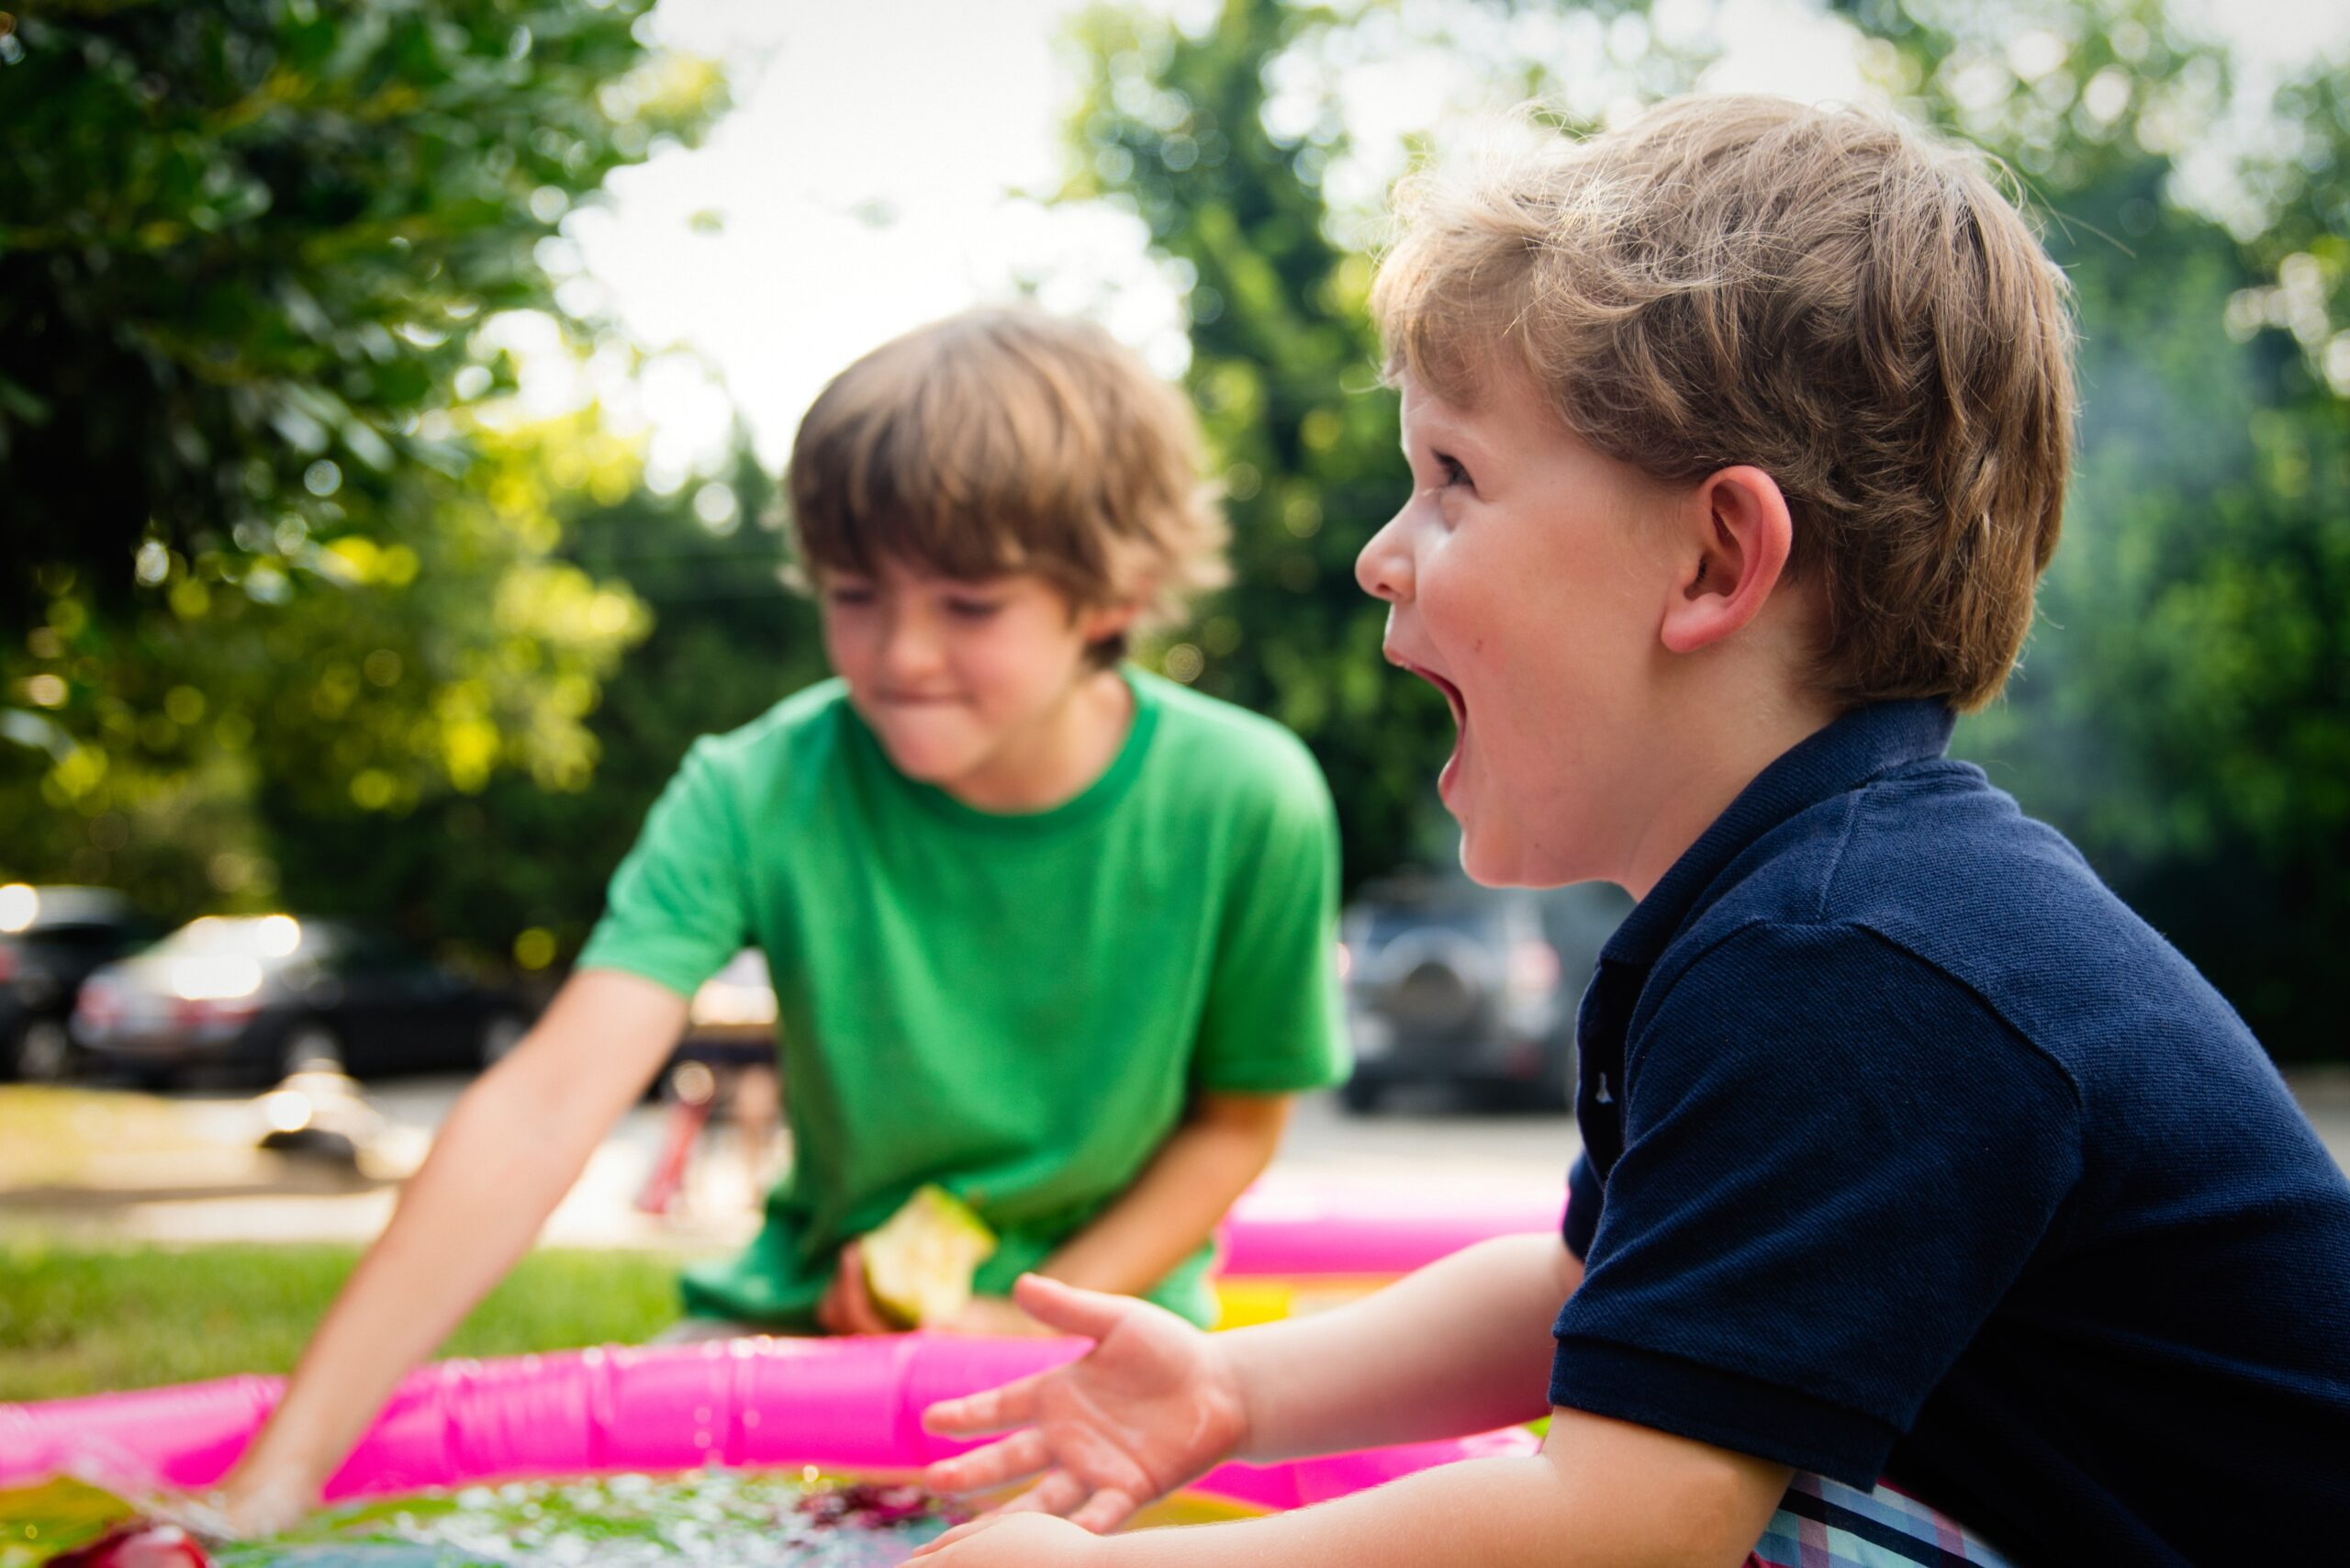 Free Family Activities for a No-Spend Weekend